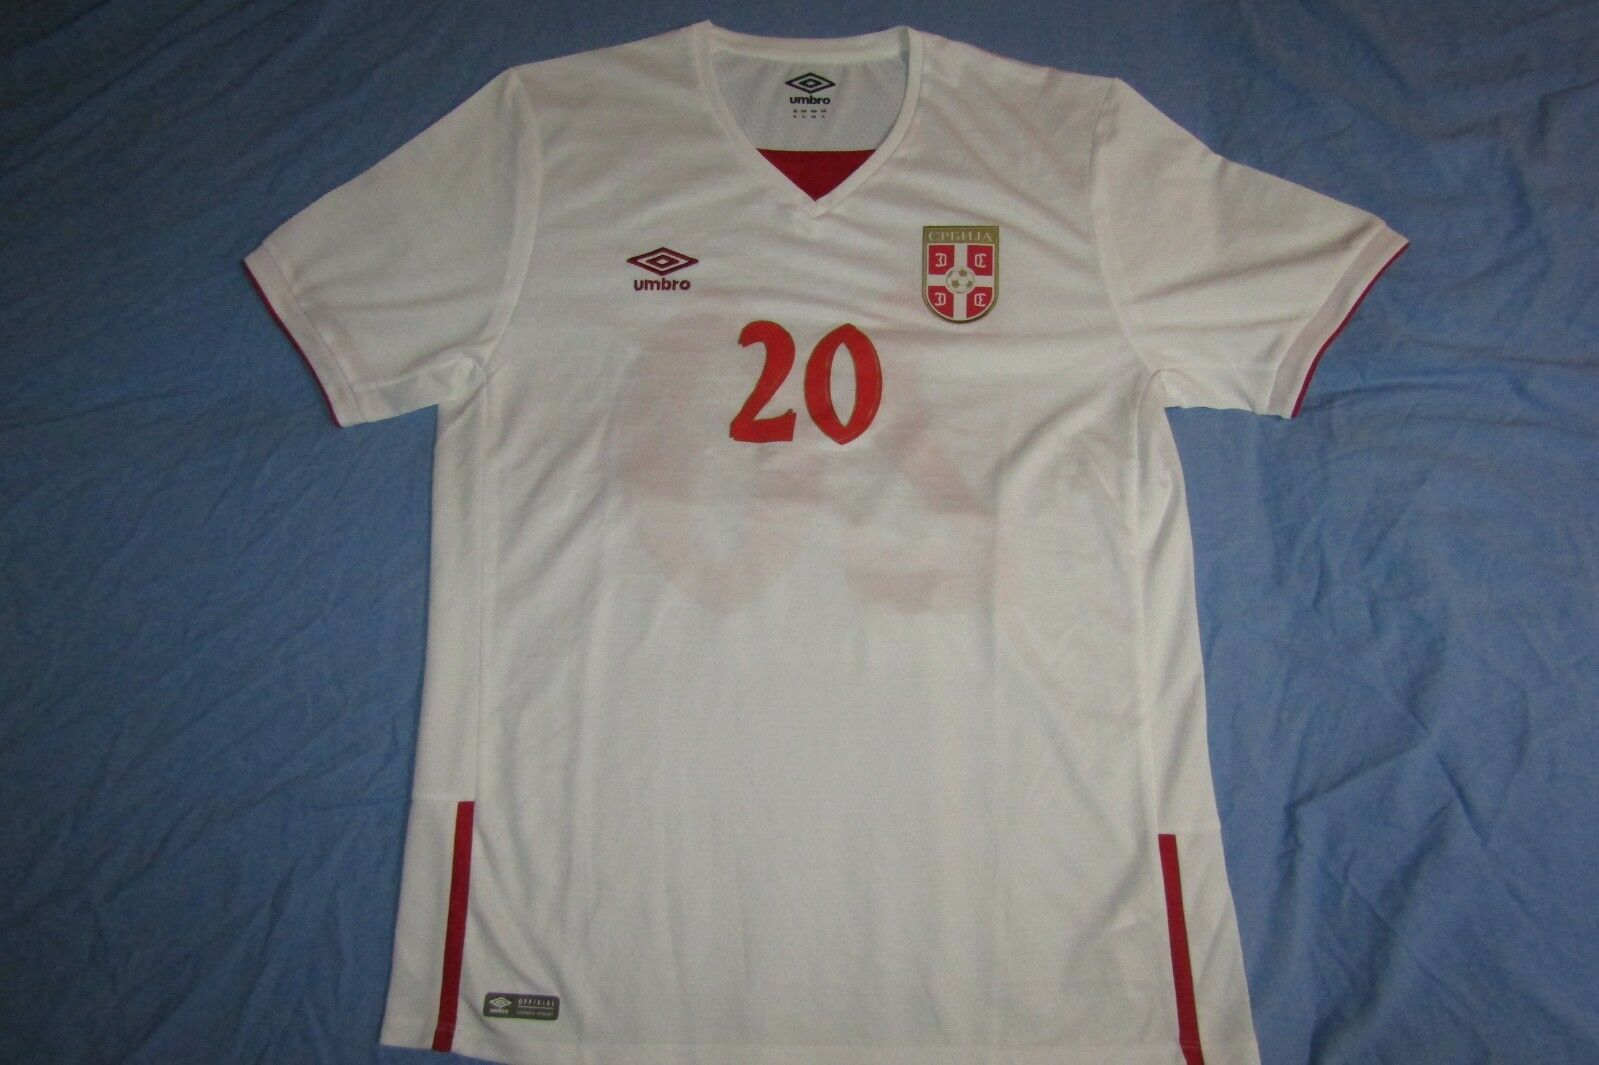 Serbia, Umbro, match preparosso jersey, XL, away